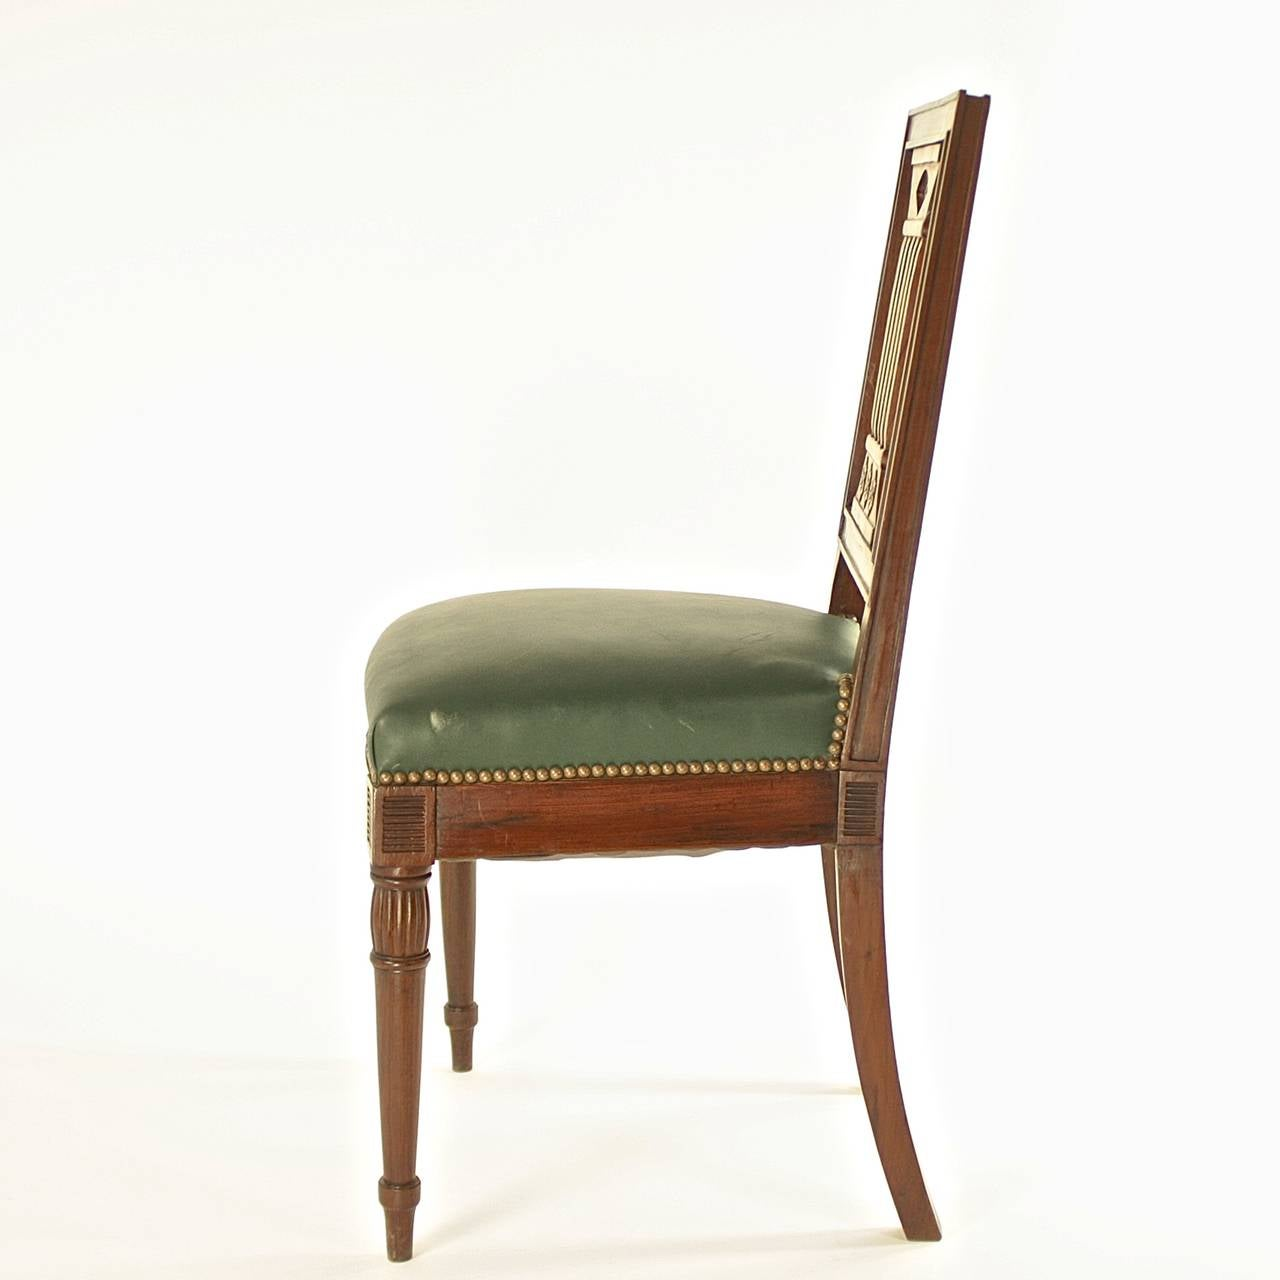 Carved Pair of Early 19th Century Chairs, in the manner of Bellange frere, circa 1810 For Sale